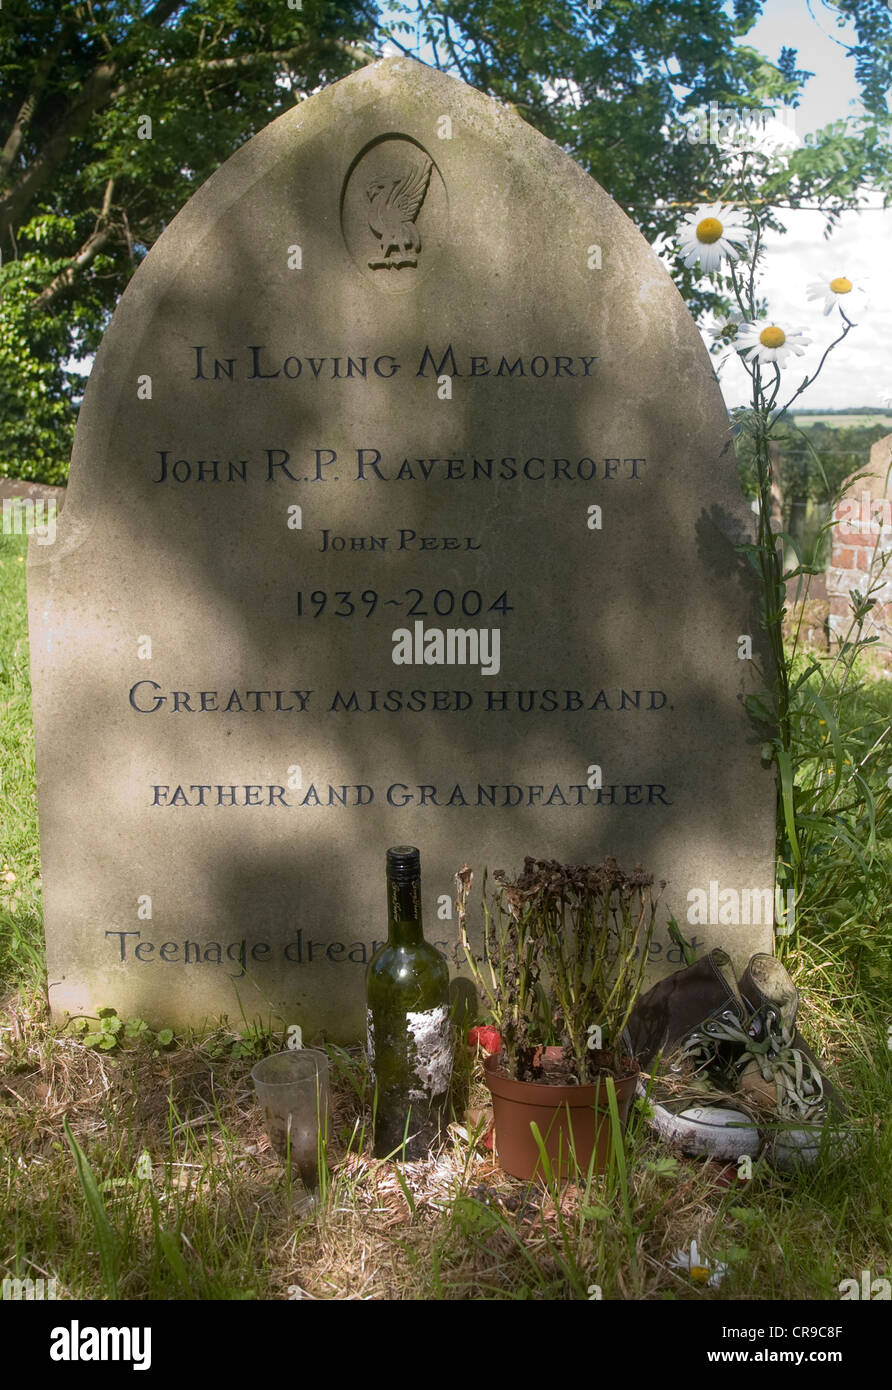 The grave of John Ravenscroft BBC broadcaster known as John Peel - Stock Image